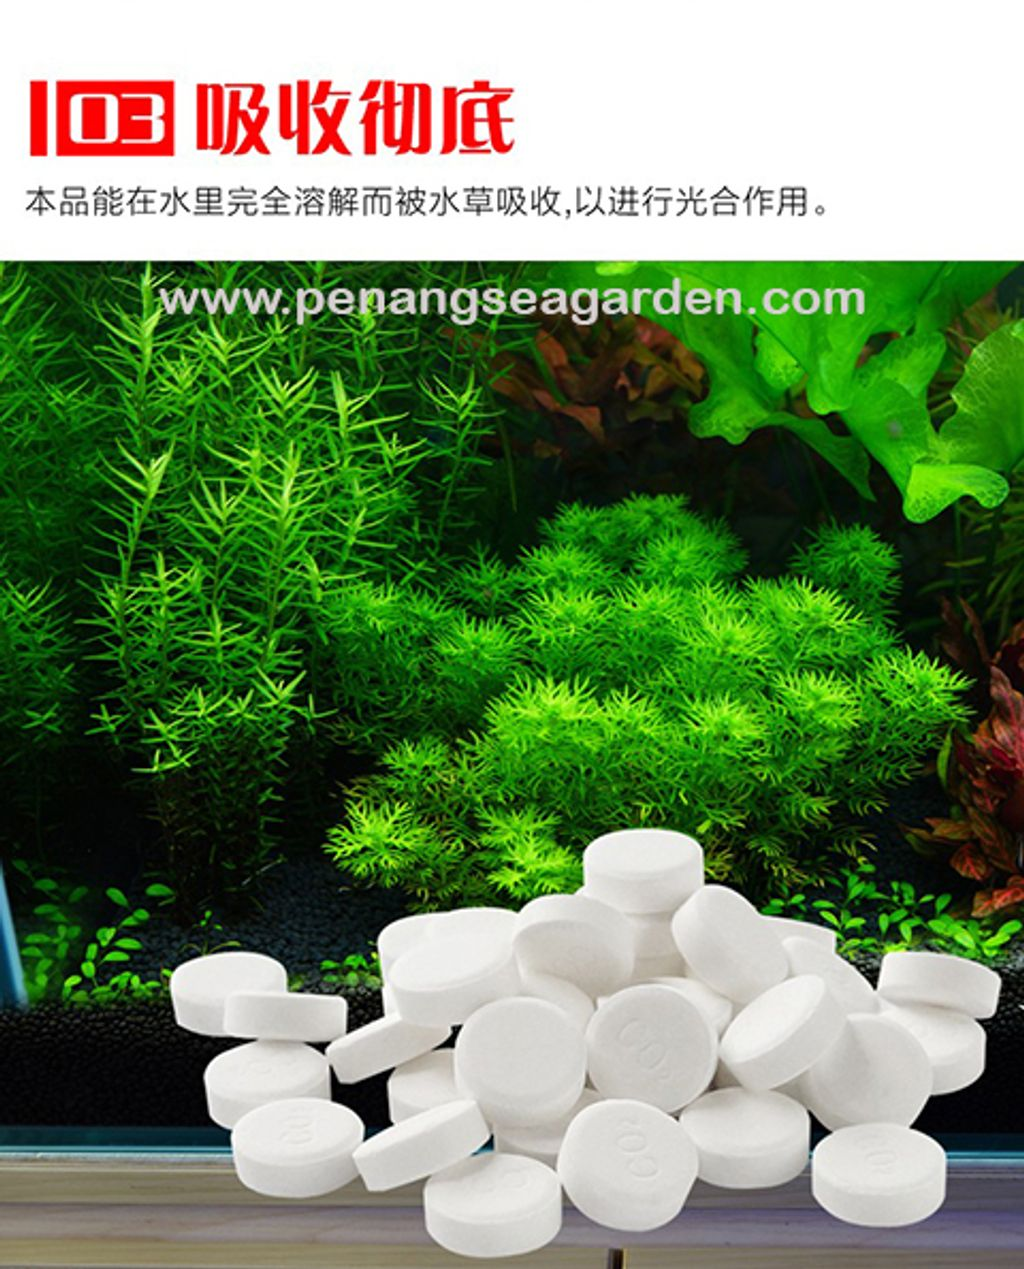 ISTA Water Plant CO2 水草 (100 Tablet) RM23-7.3w.jpg